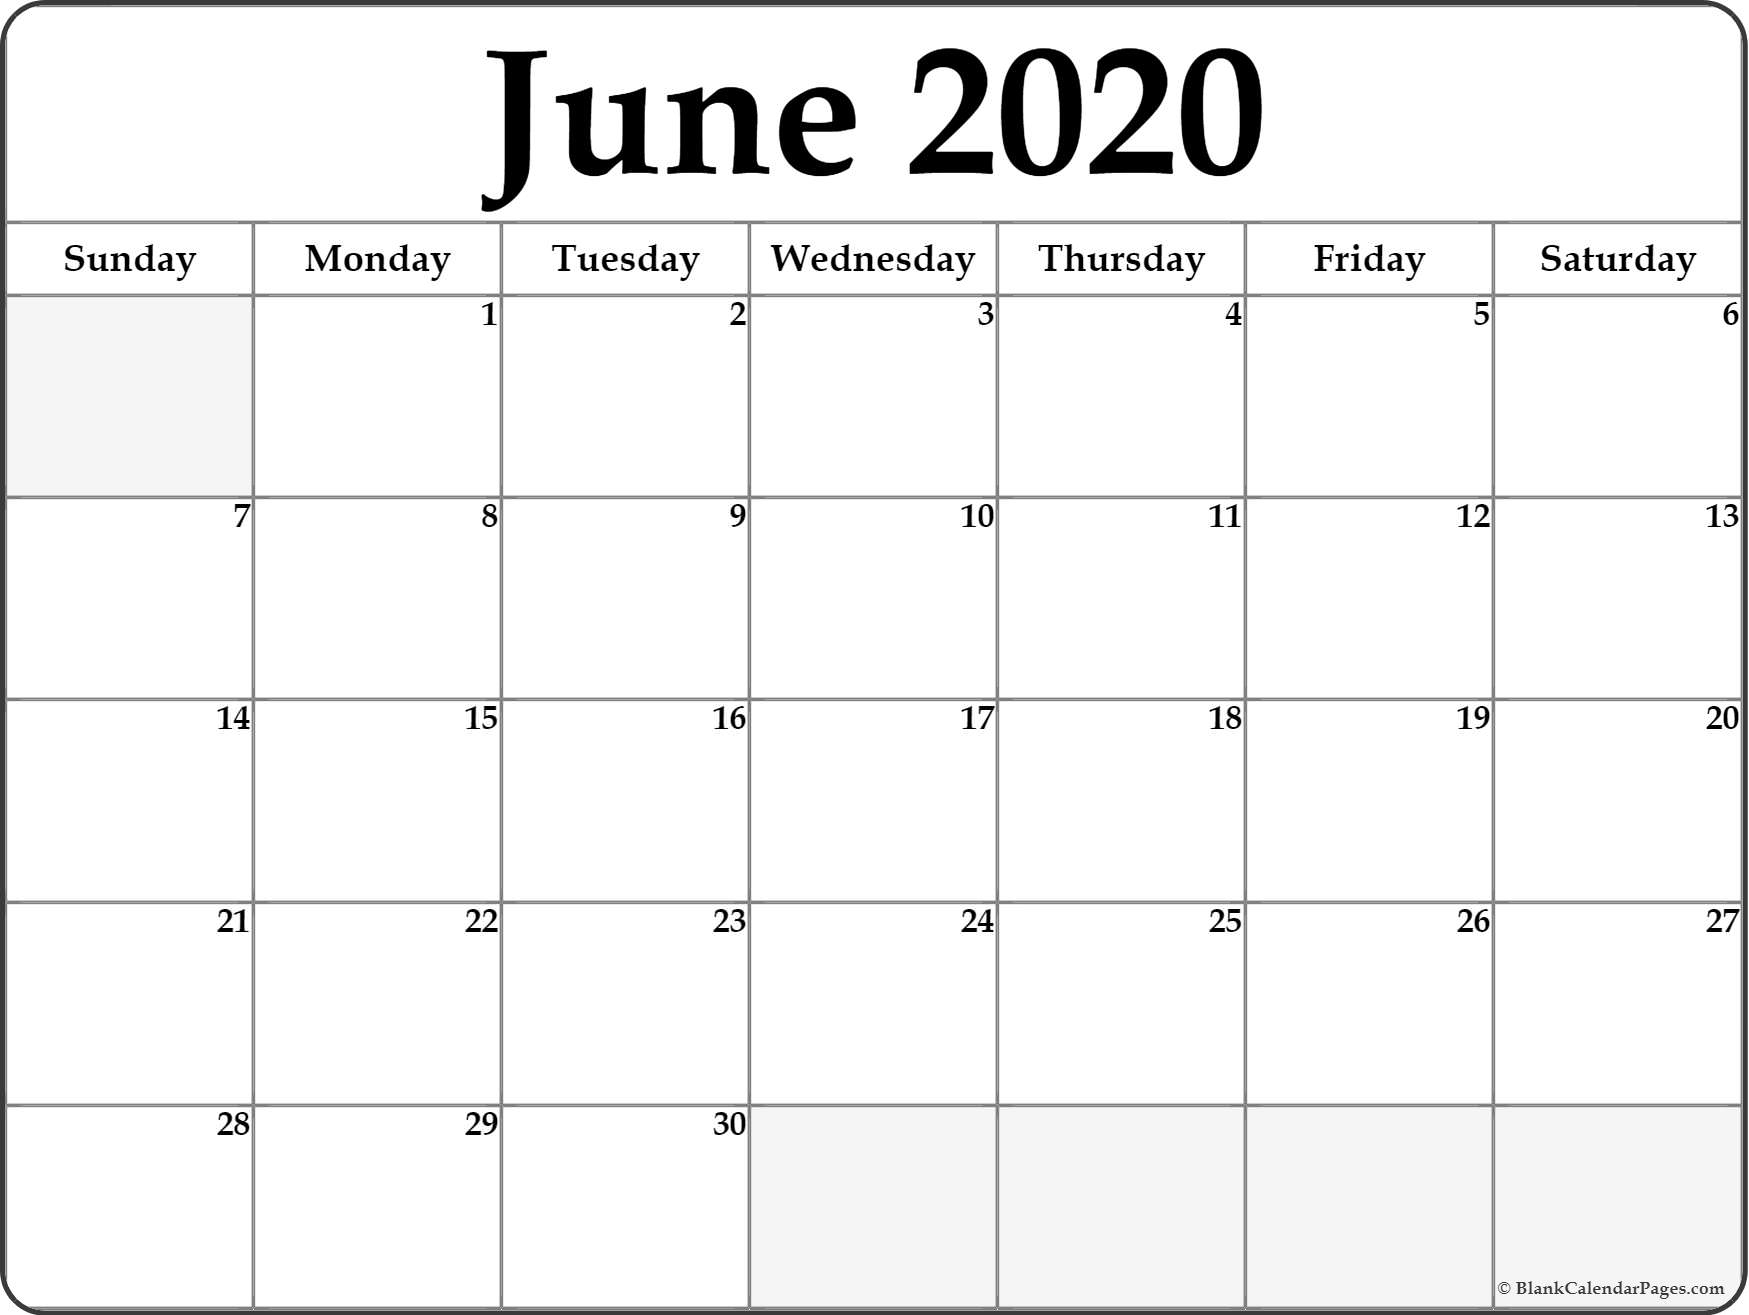 June 2020 Calendar | Free Printable Monthly Calendars throughout Calendar Maker July 2019-June 2020